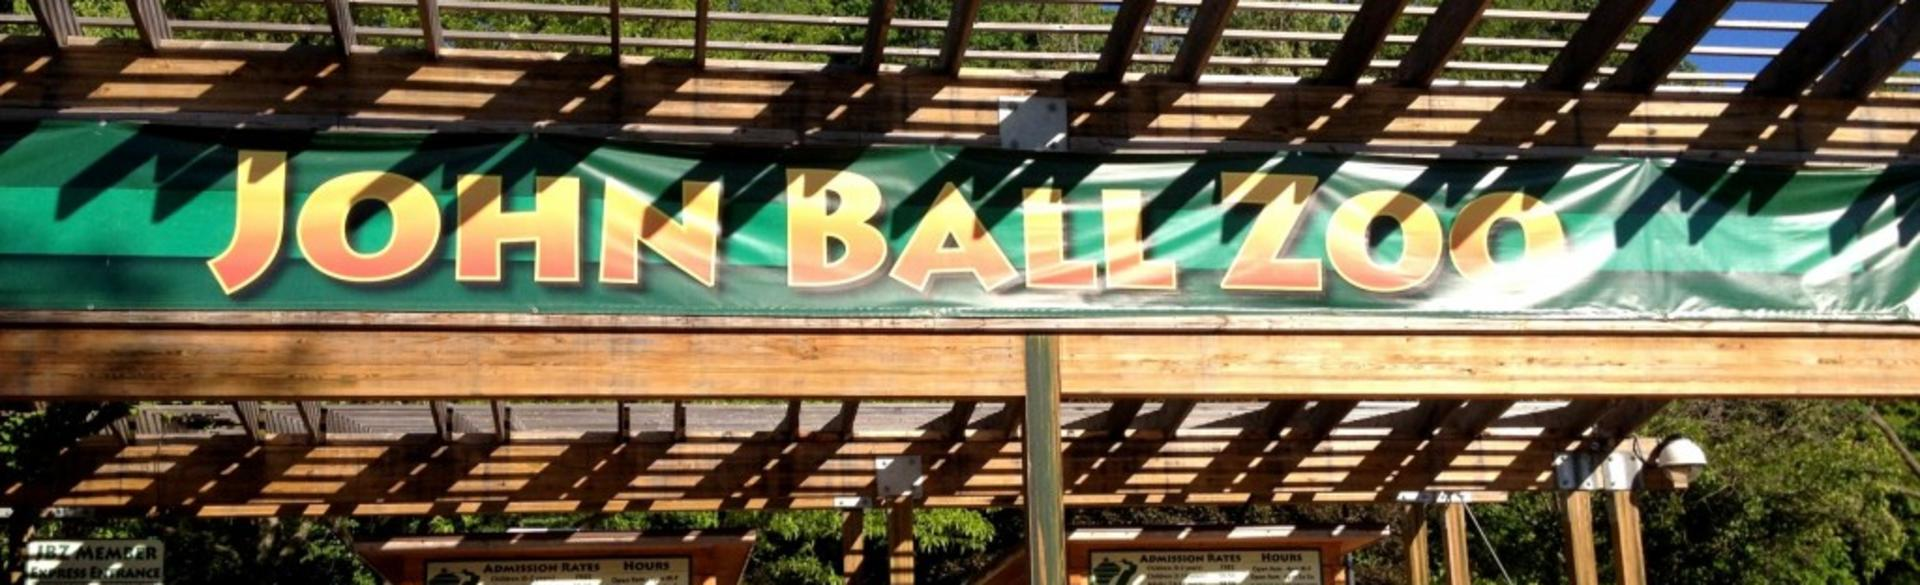 """Just steps away from the John Ball Zoo entrance, John Ball Park is the """"home"""" of Oktoberfest West Michigan. The park includes picnic areas, playgrounds, biking, hiking/walking, access point for Kent Trails, and pond."""